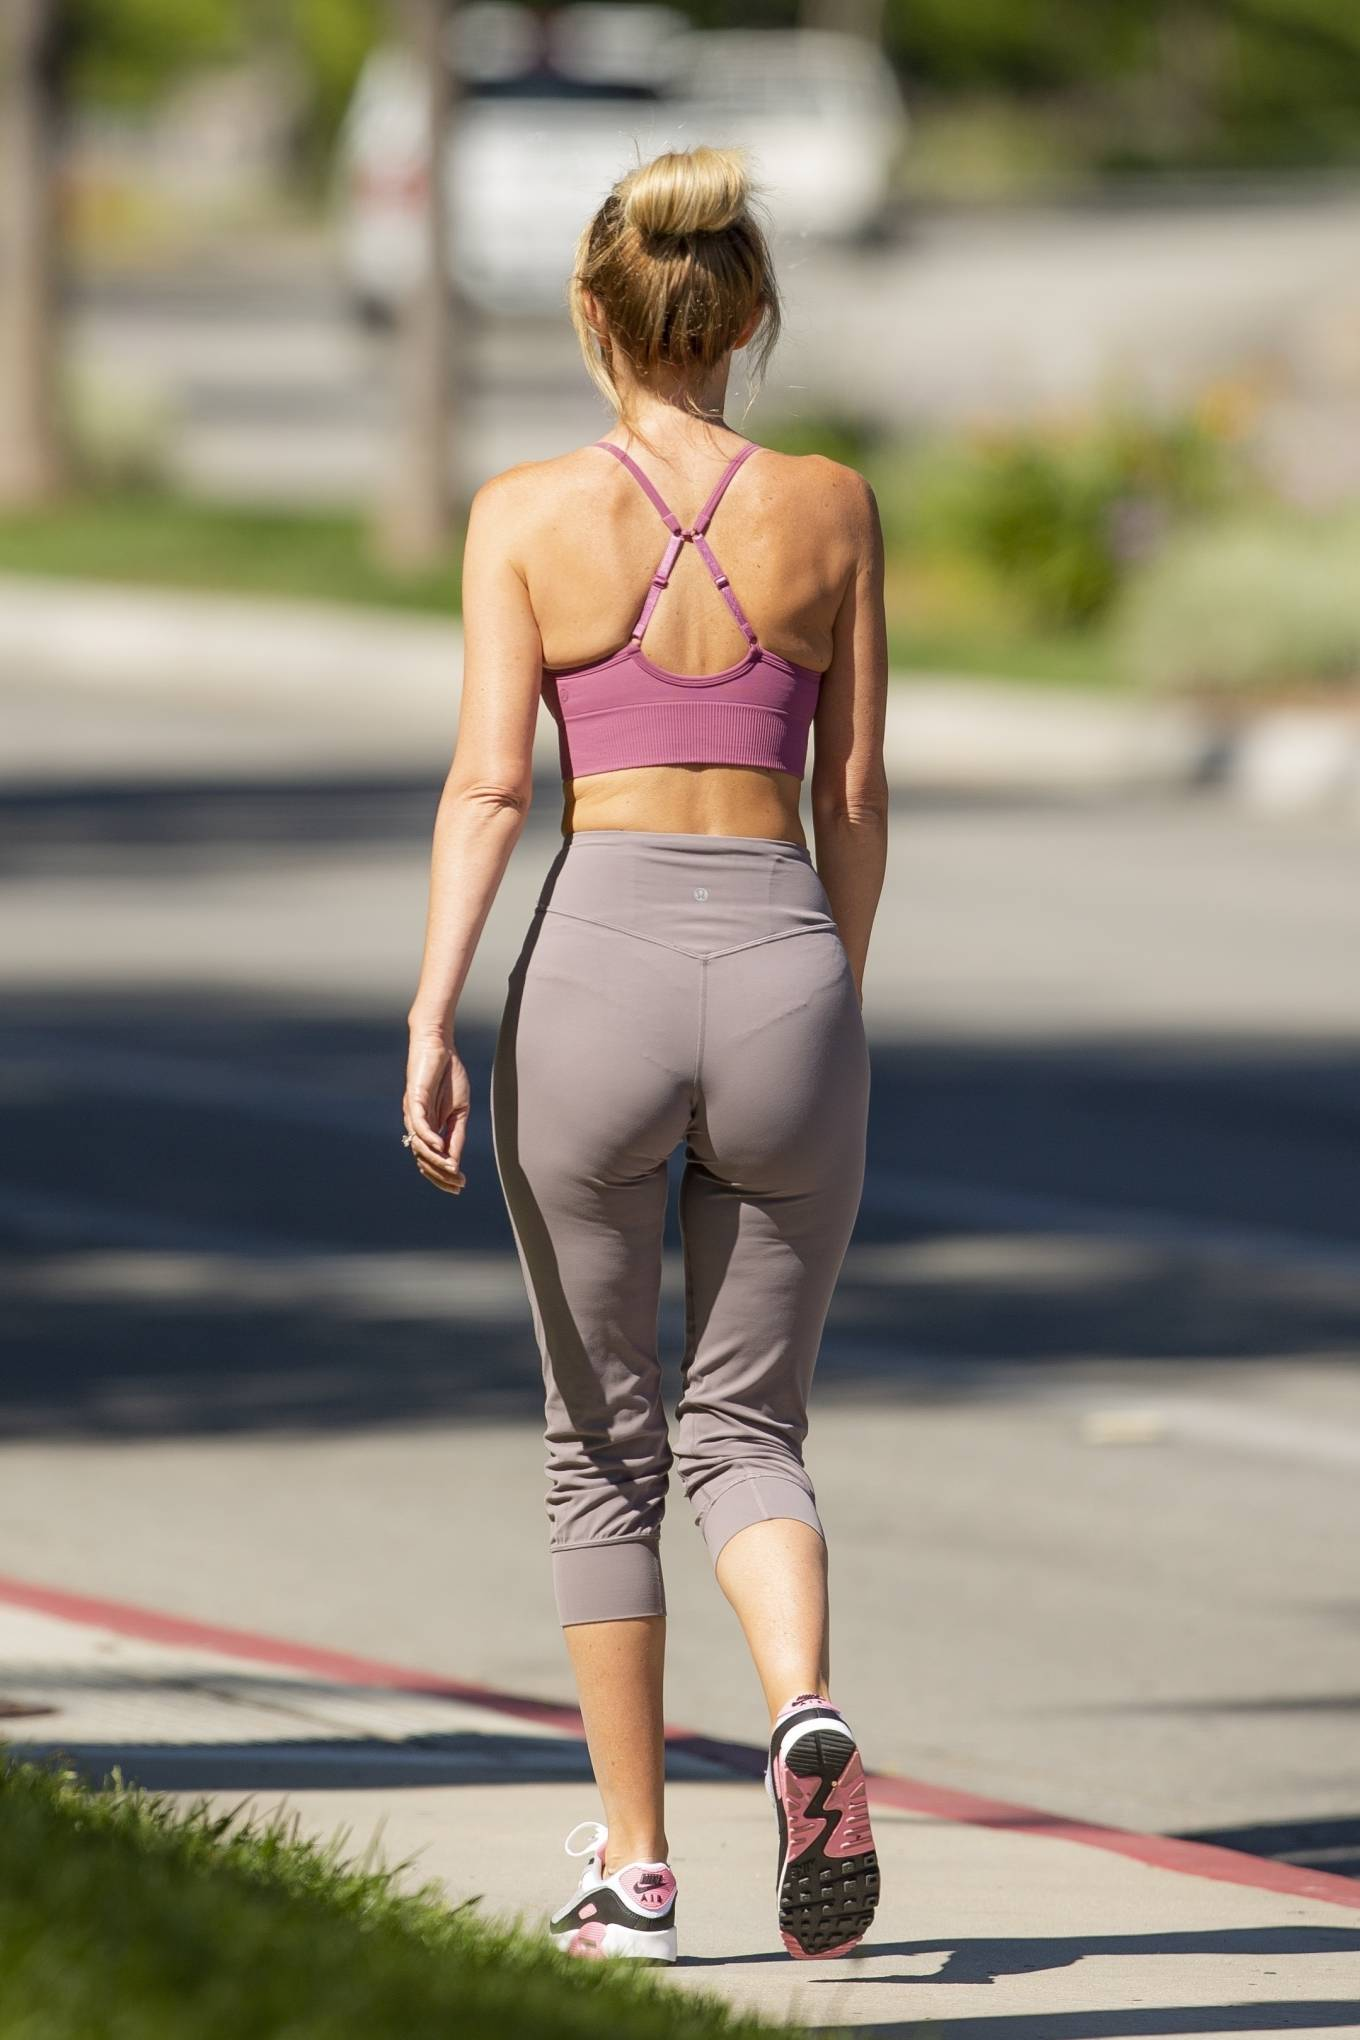 Hayley Roberts Hasselhoff 2020 : Hayley Roberts Hasselhoff in Tights and Sports Bra – Out in Calabasas-05